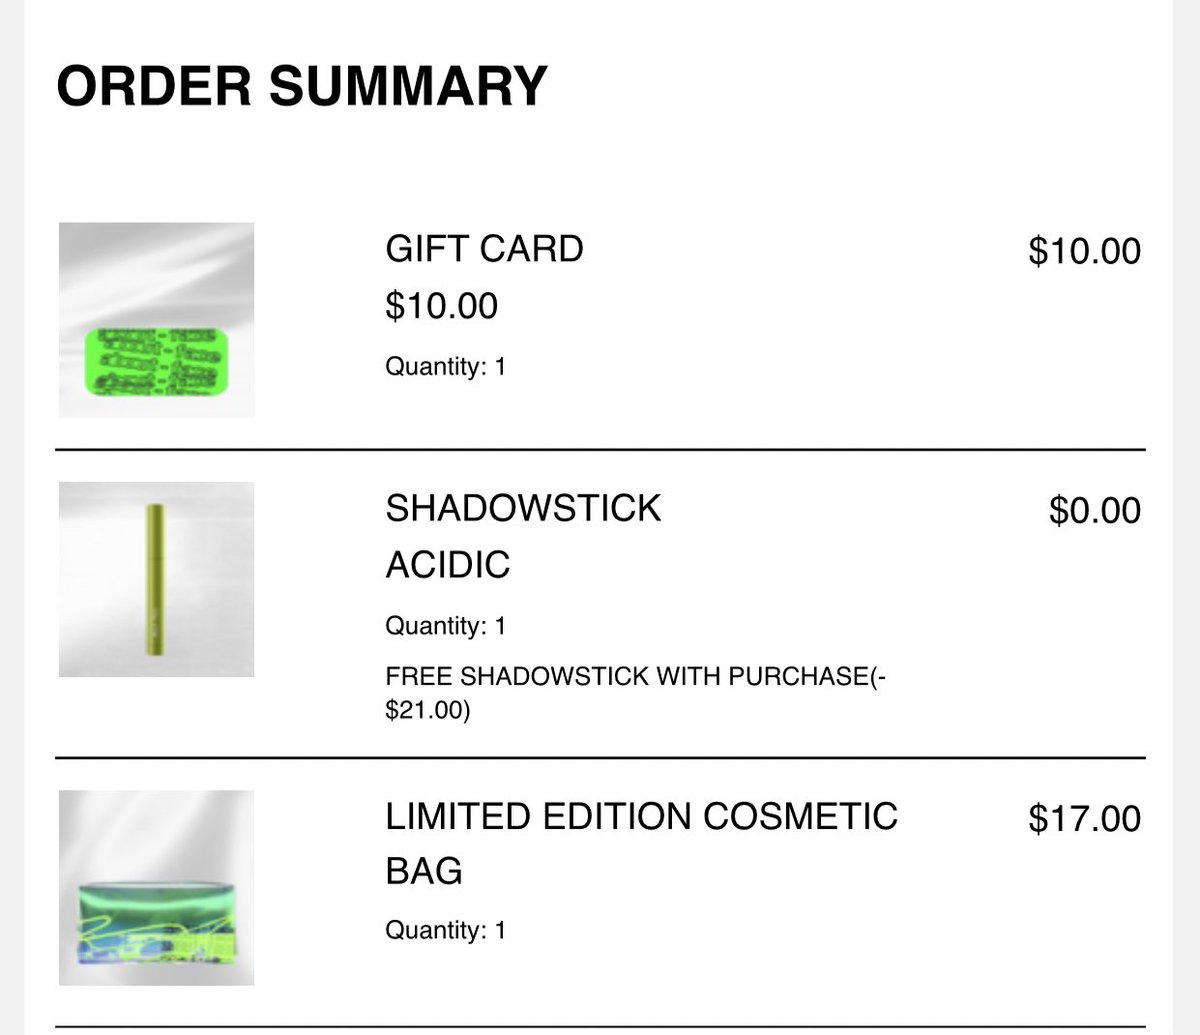 i absolutely did not make three separate orders with gift cards that i used in my final order just so i could get more free shadowsticks from about face, and now they'll ship in three different packages, what are you talking about?